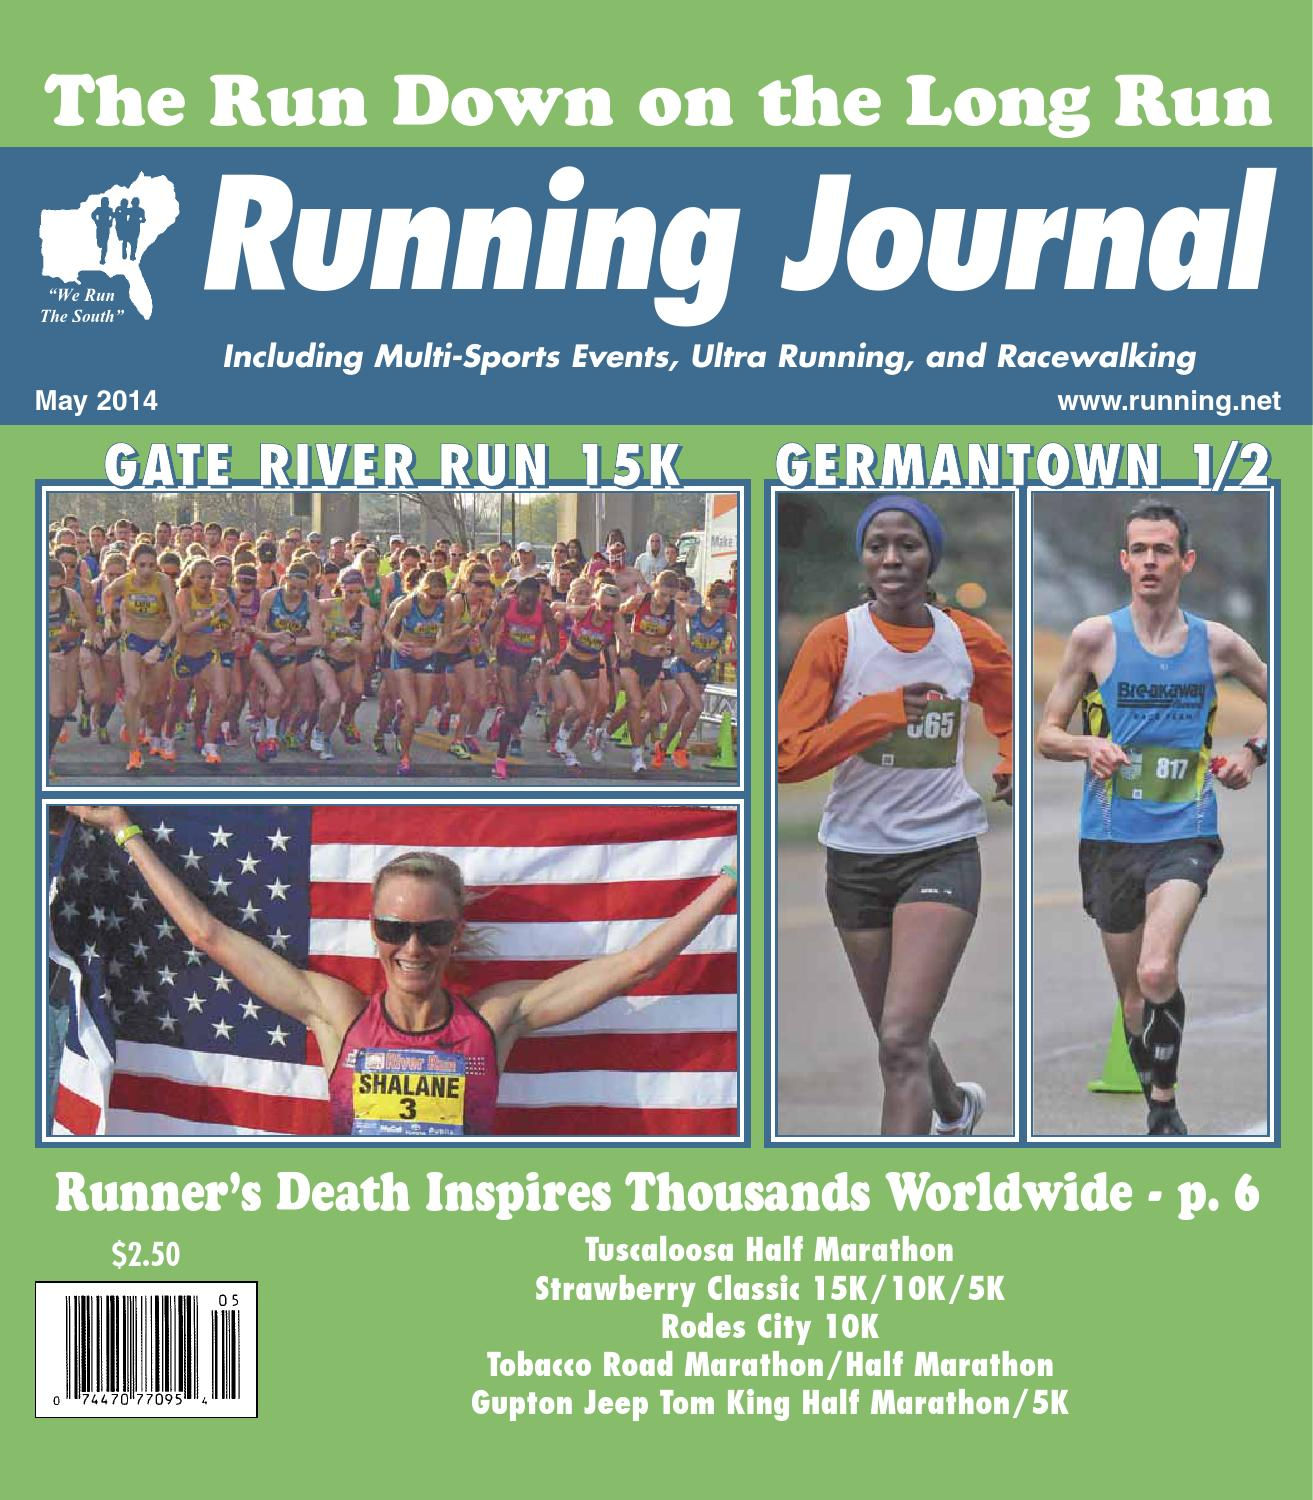 RJ1405 by Running Journal - issuu